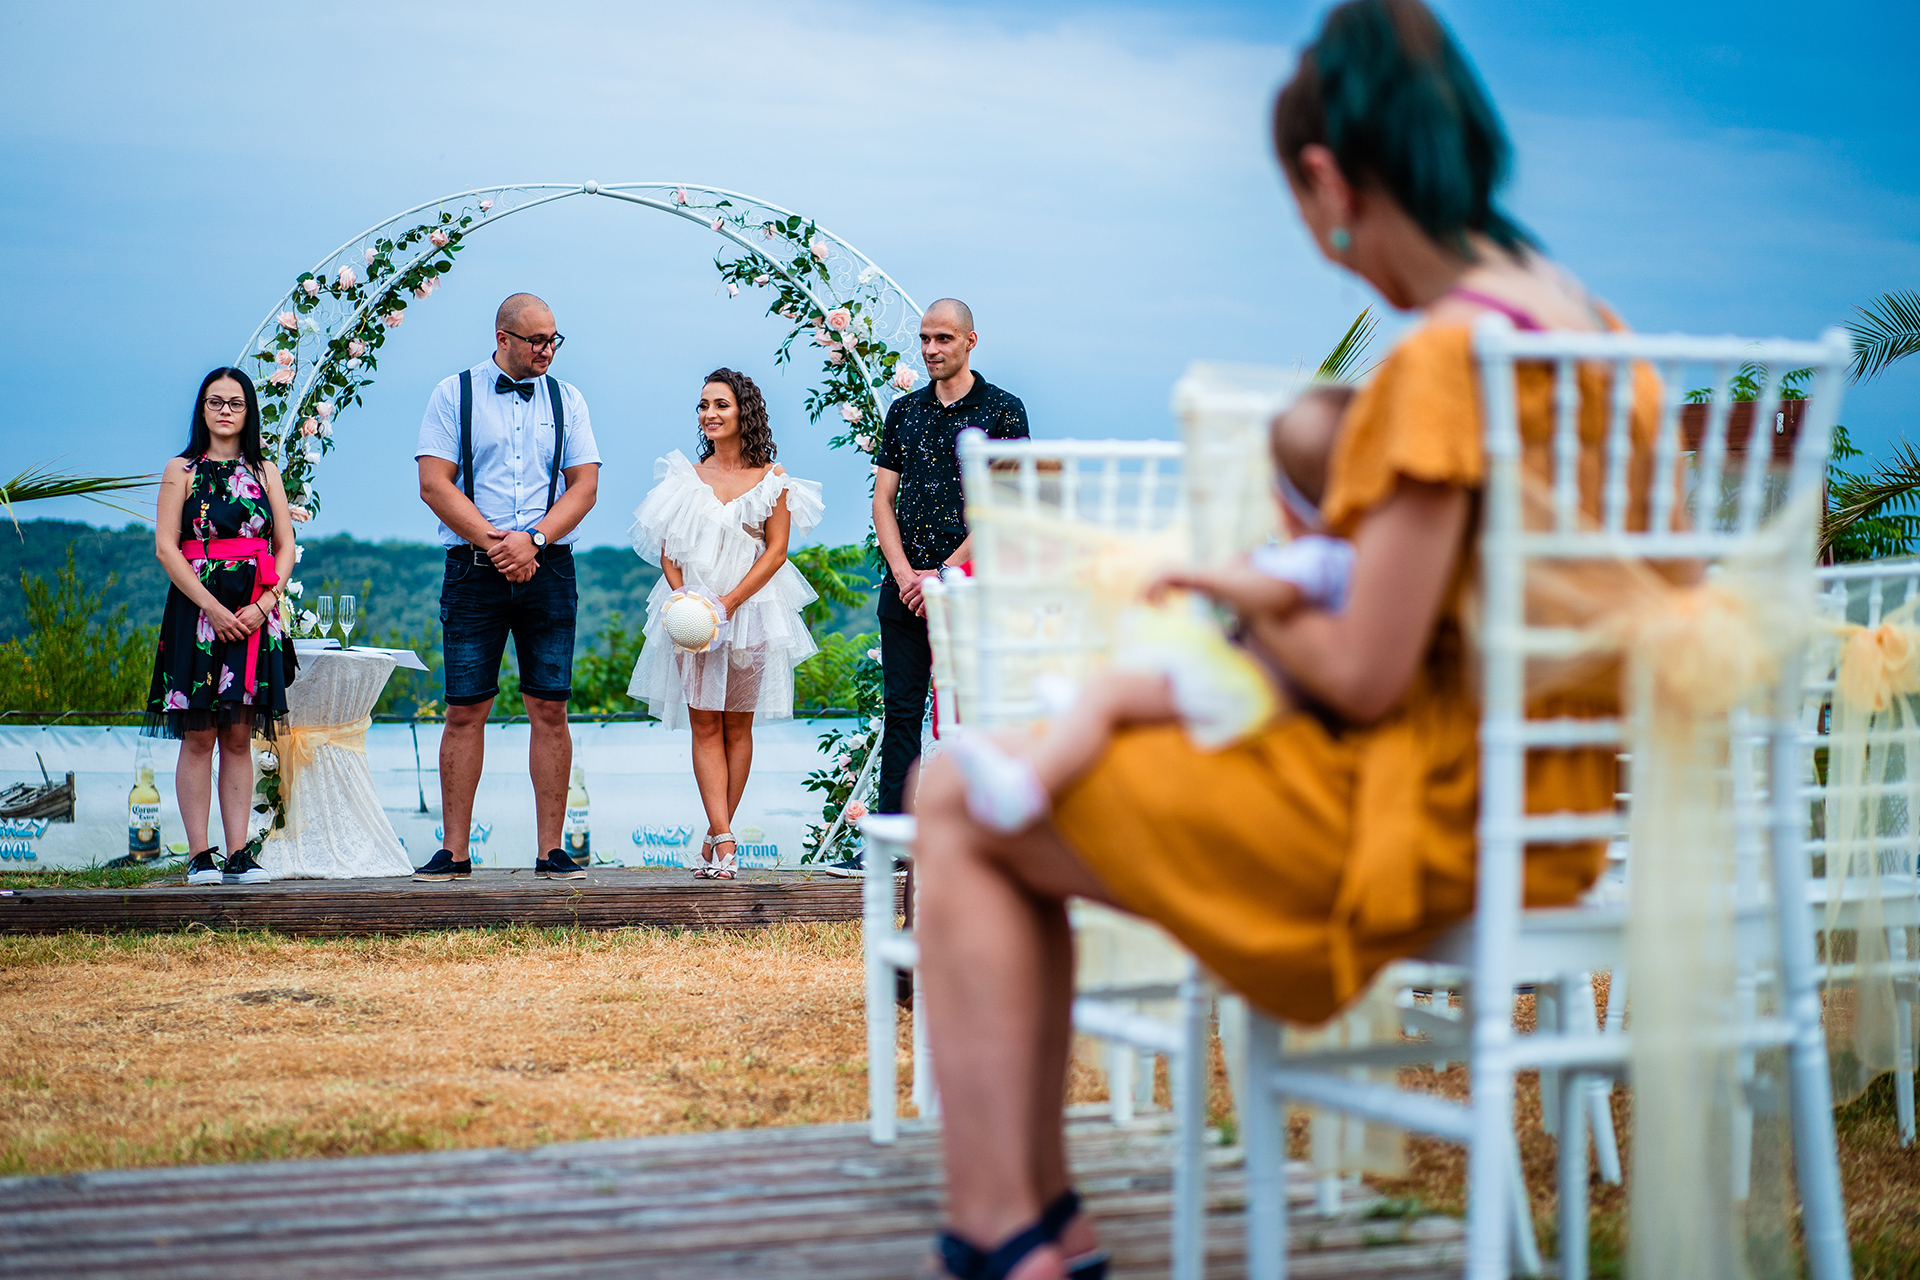 Crazy Pool Elopement Ceremony Image from Ruse, Bulgaria | Even though the wedding ceremony was quite small, the venue was absolutely gorgeous